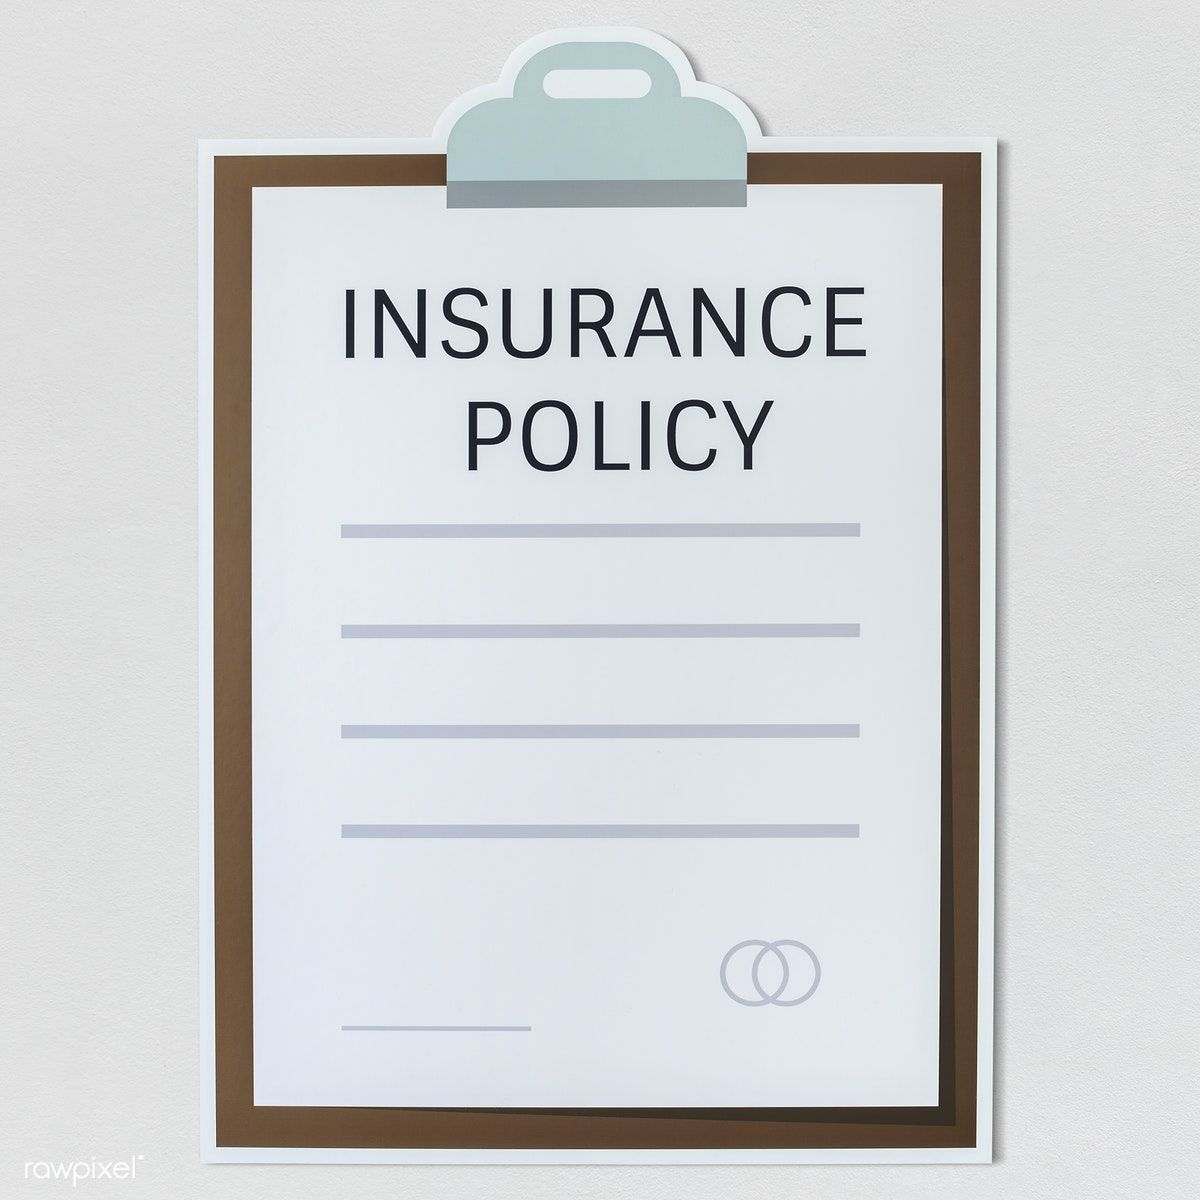 Download Premium Psd Of Insurance Policy Information Form Icon 402342 Insurance Policy Insurance Health Care Insurance